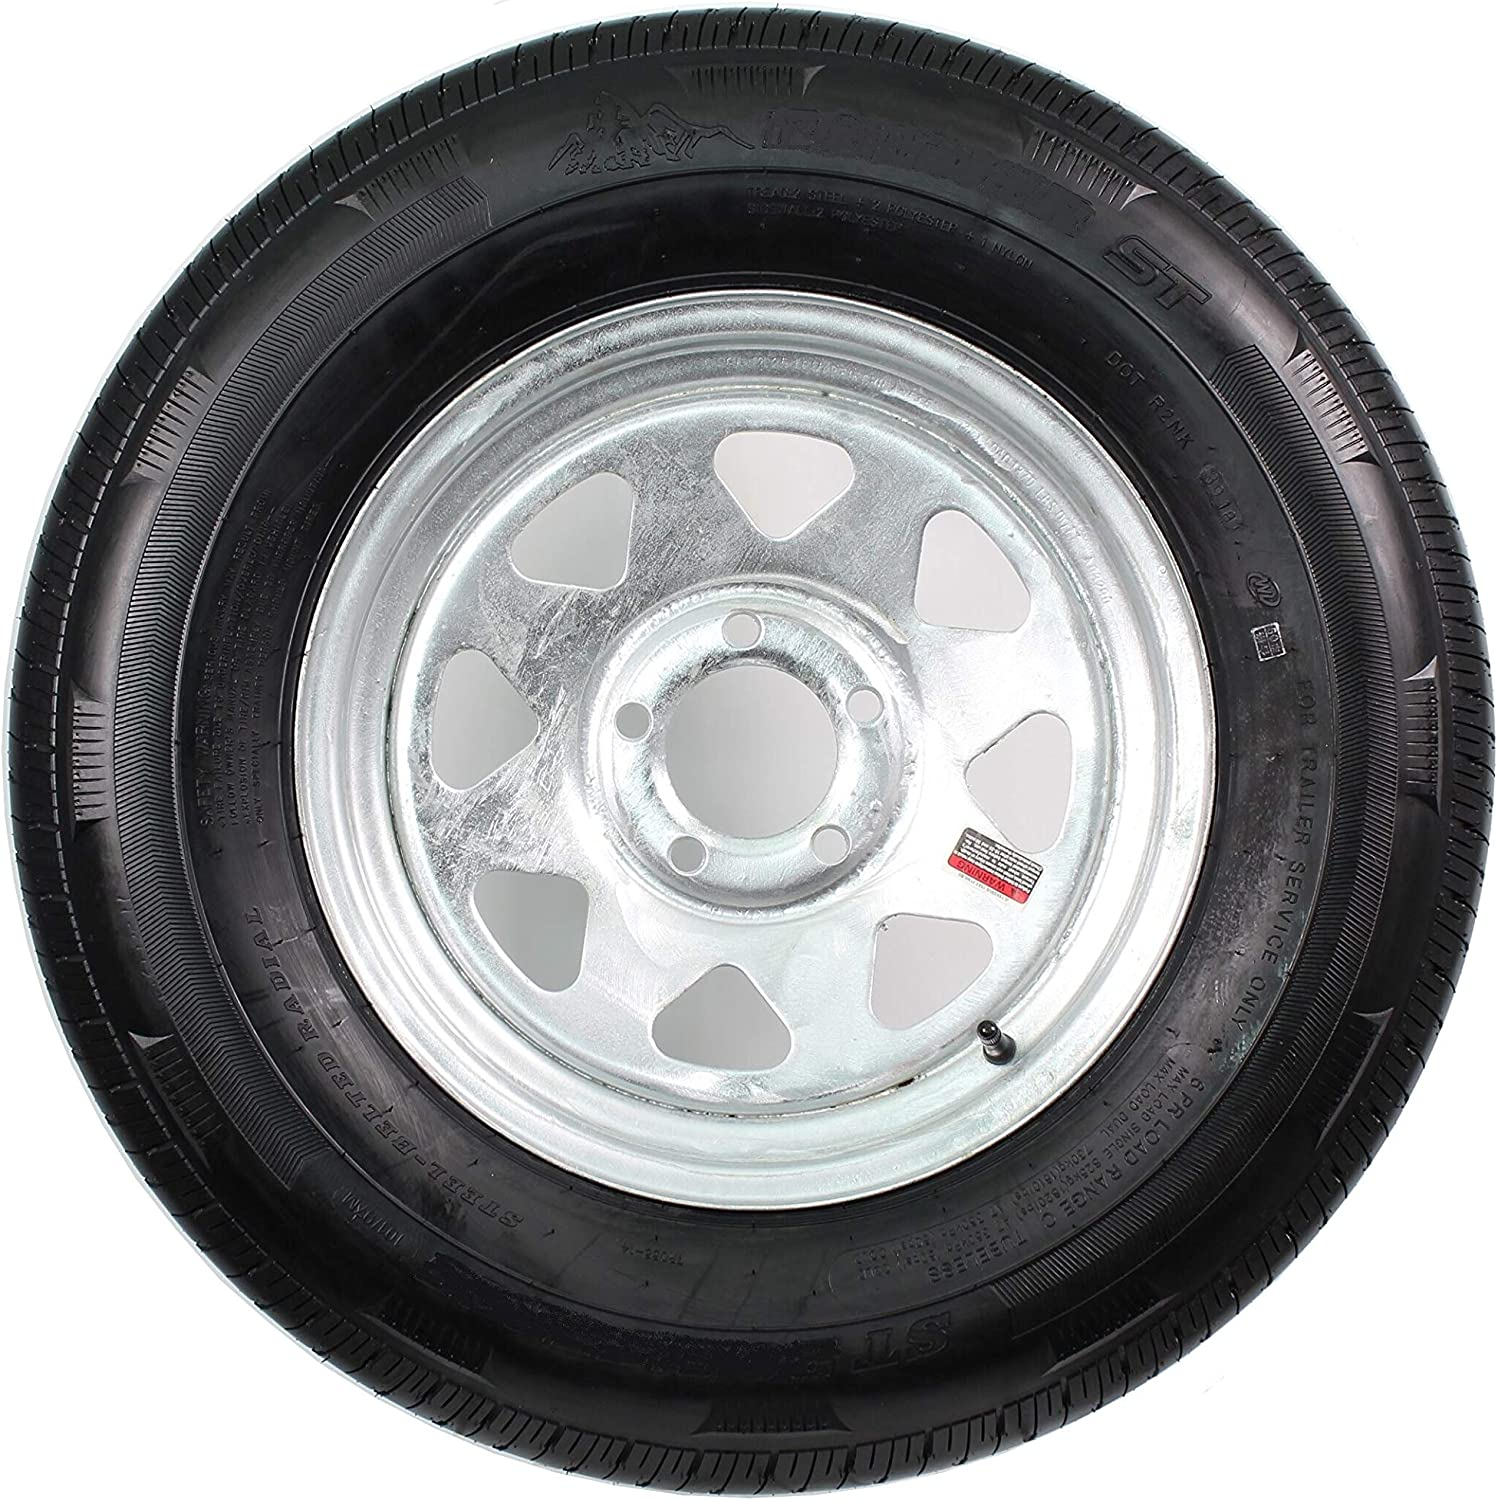 Radial Trailer Tire Animer and price revision On Galvanized Rim ST225 5 Sale SALE% OFF 4 Lug LRD 75R15